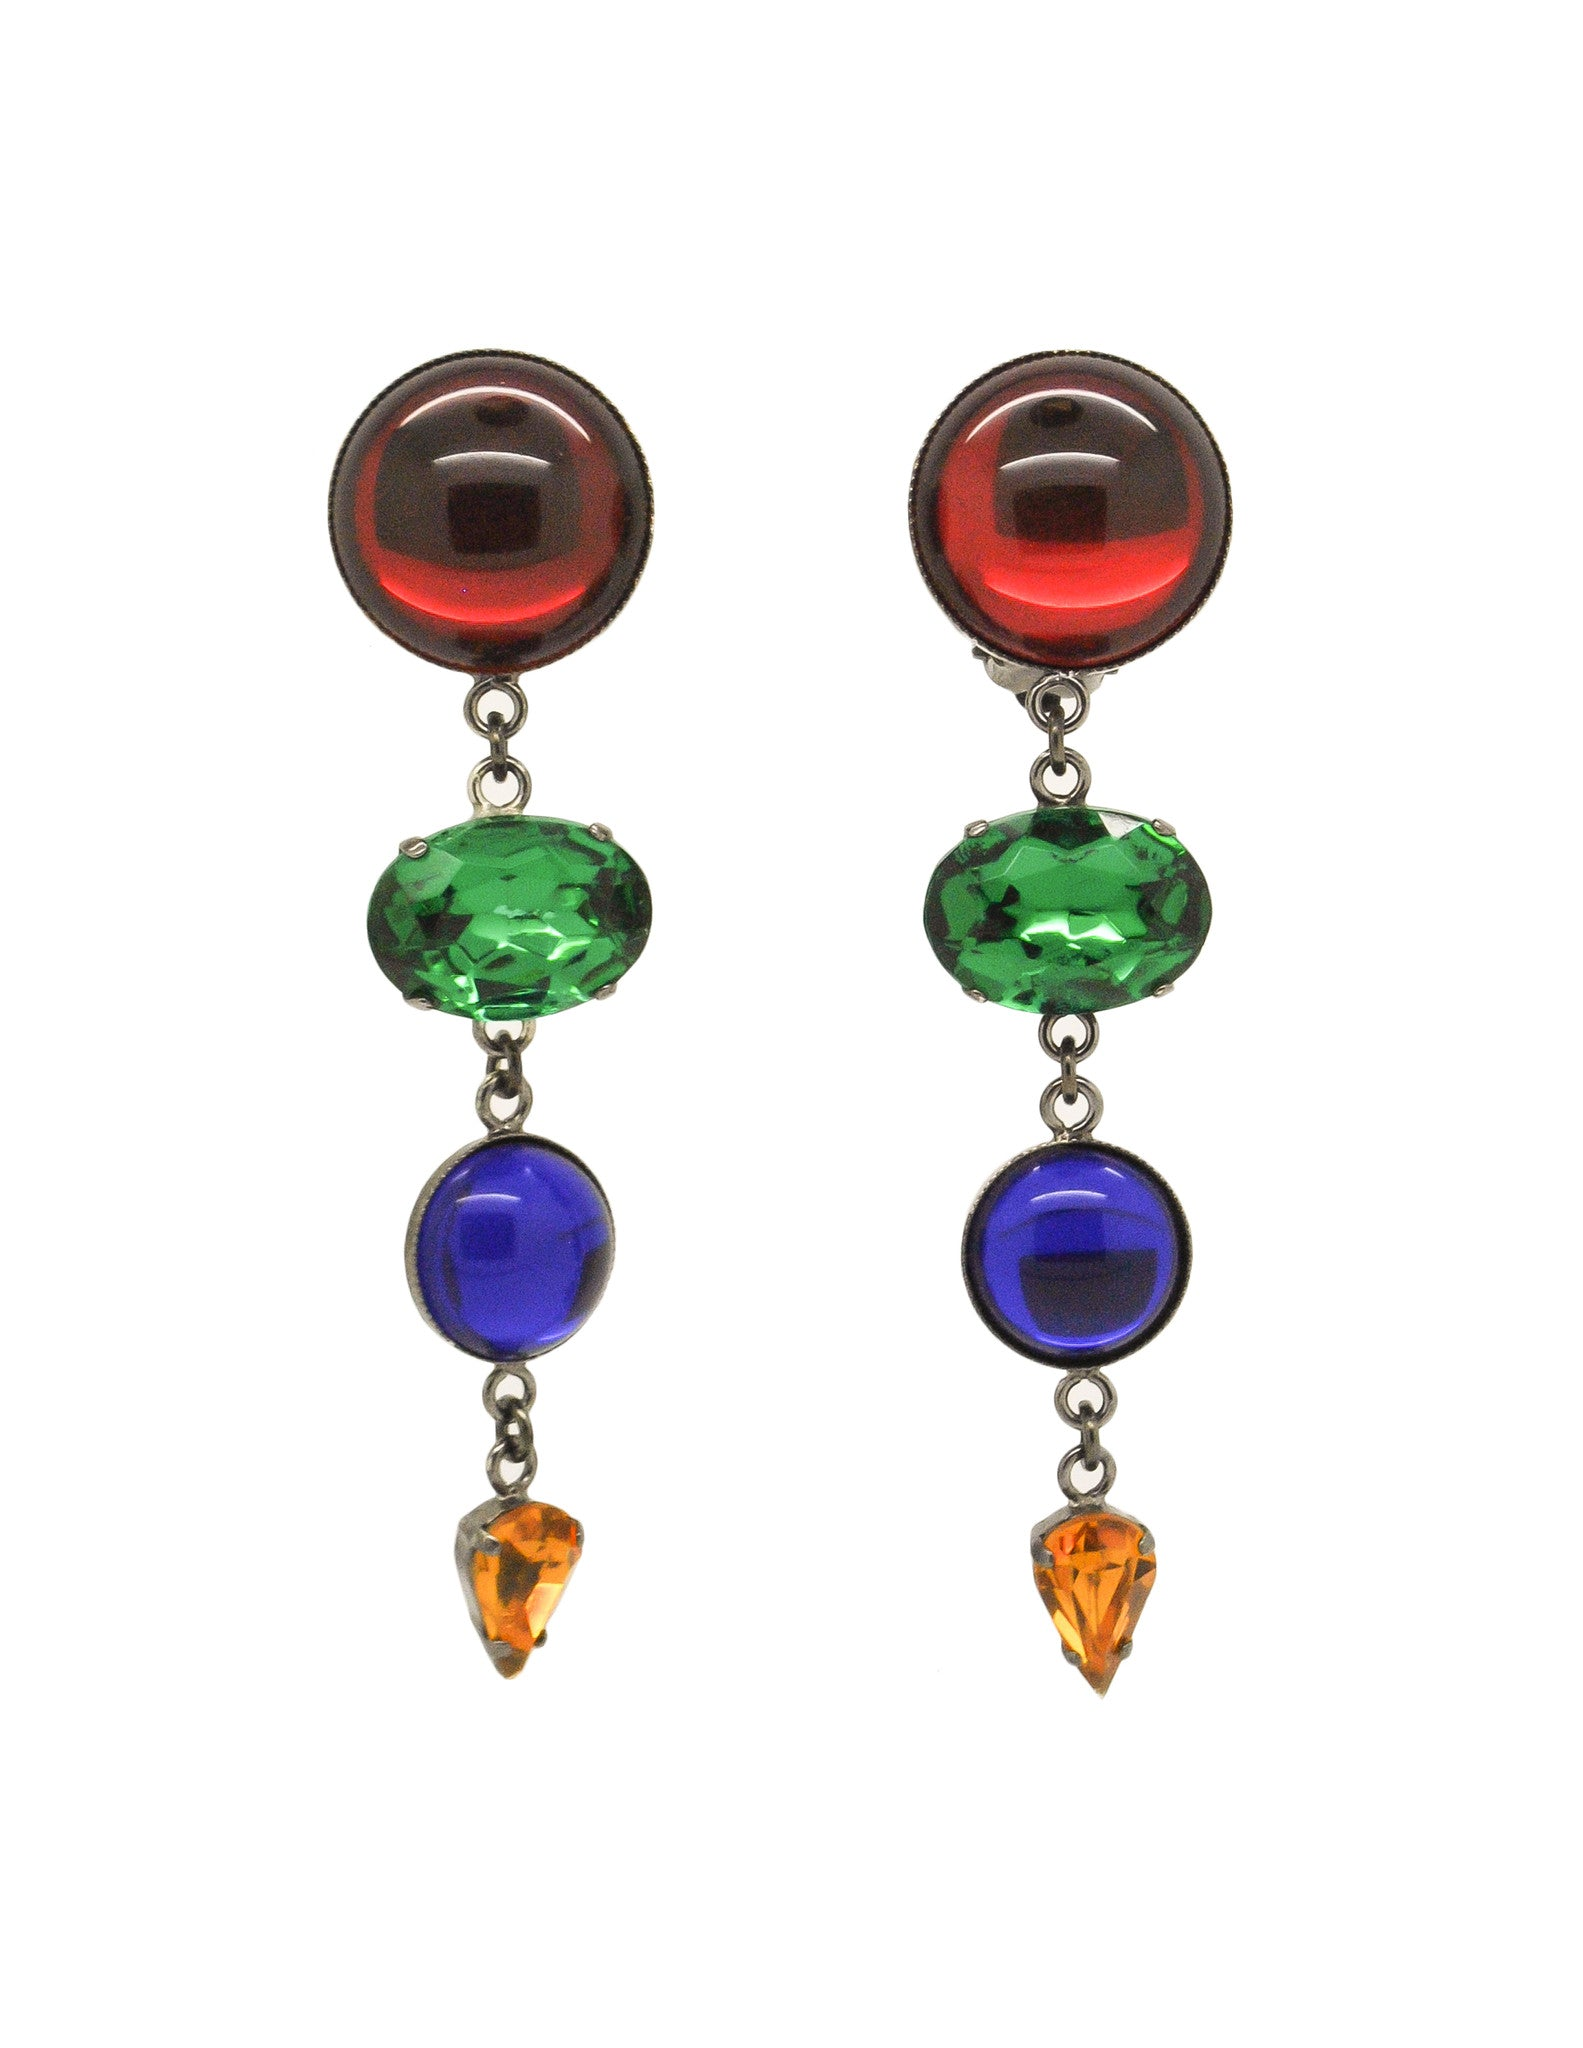 Sonia Rykiel Inscription Vintage Multicolor Rhinestone Drop Earrings - Amarcord Vintage Fashion  - 1